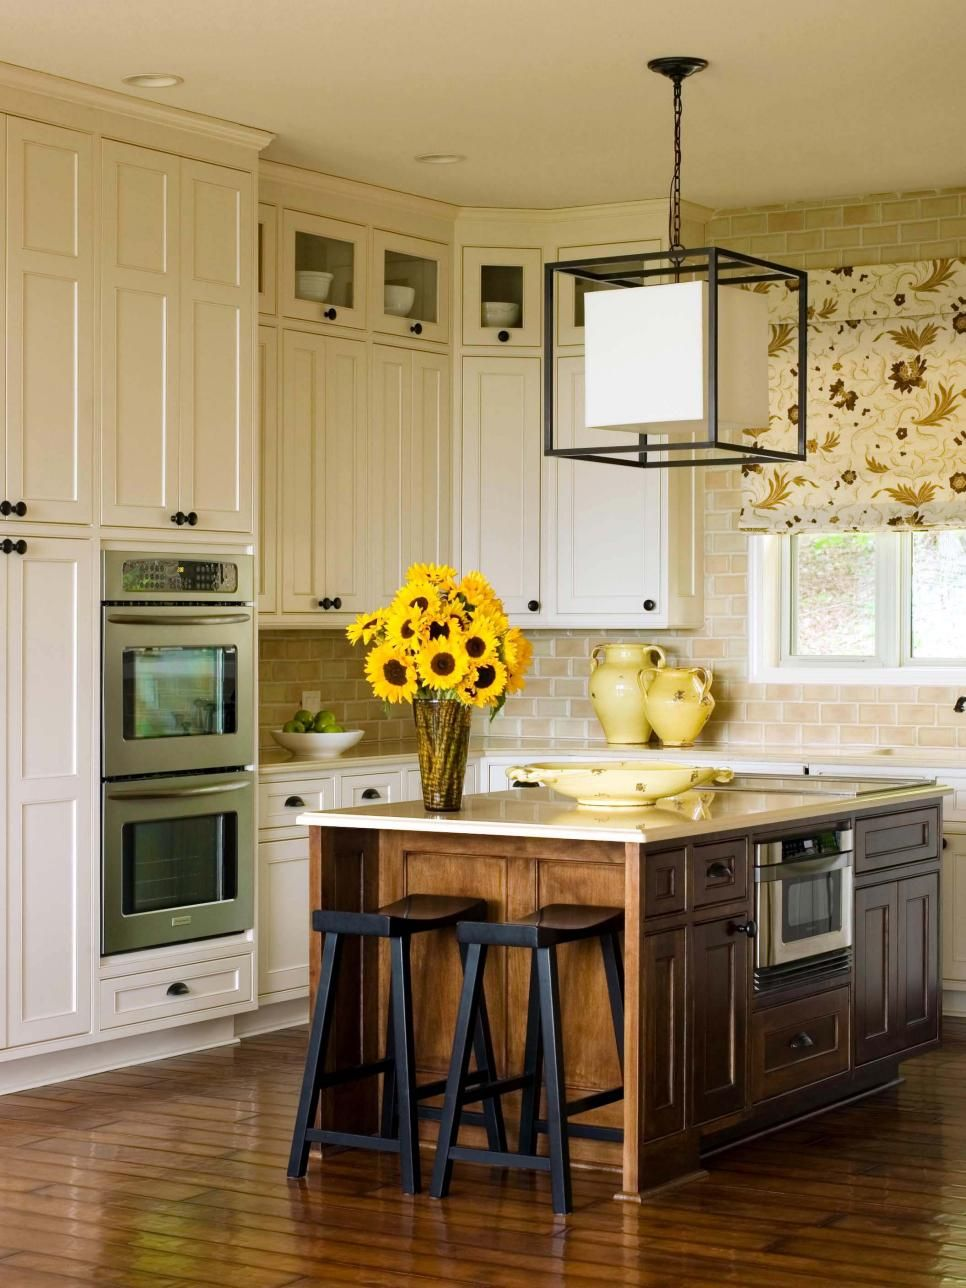 Kitchen Cabinets Should You Replace Or Reface  Hgtv Kitchens Beauteous Kitchen Cabinet Refinishing Design Decoration